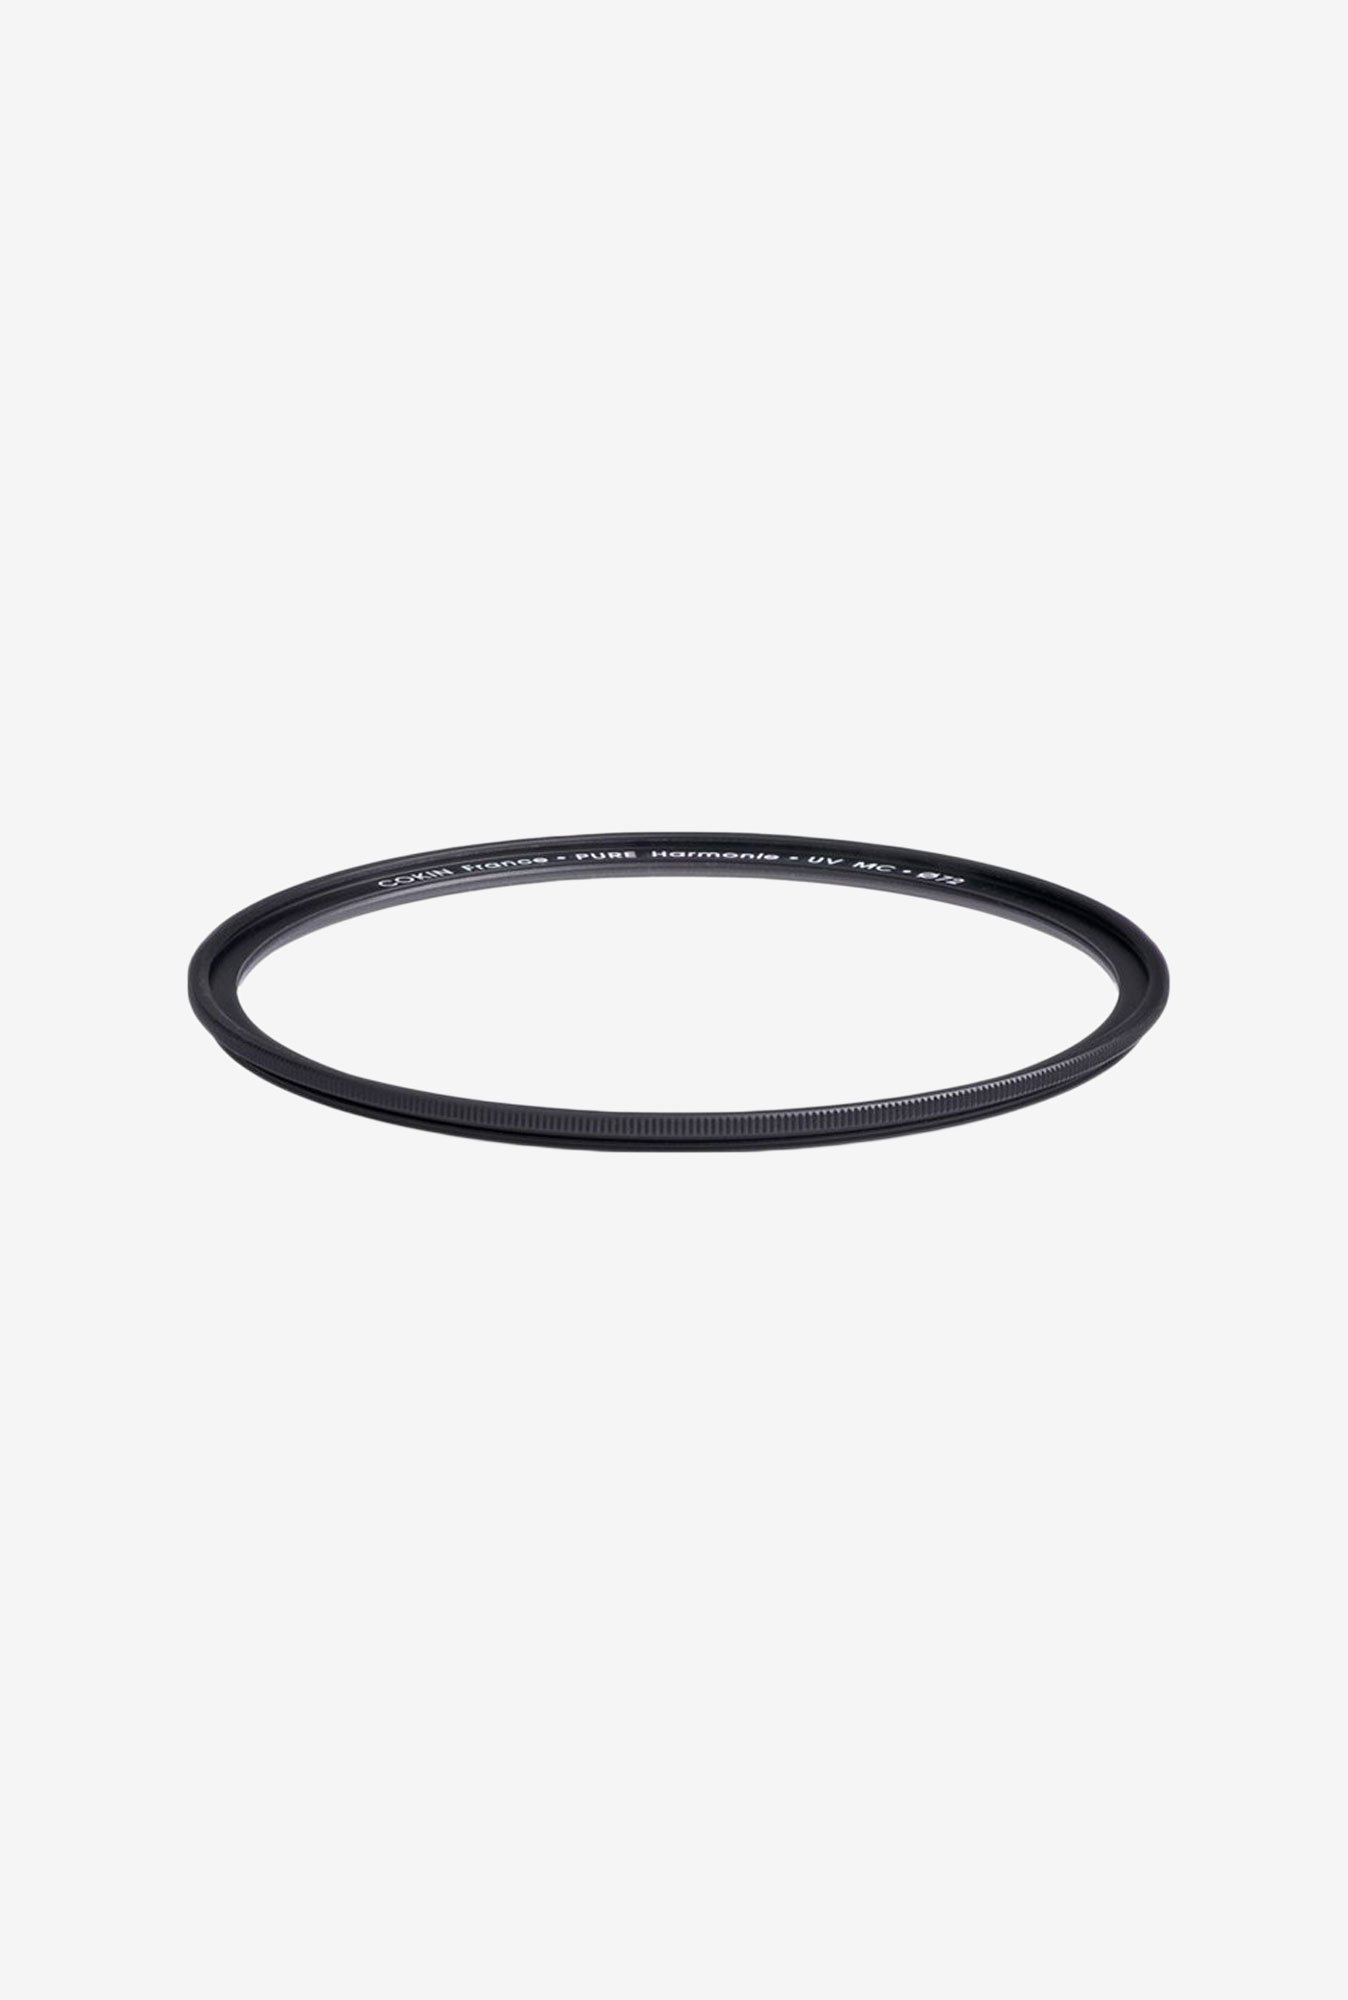 Cokin 46UVS Pure Harmonie Ultra Slim Round filter (Black)